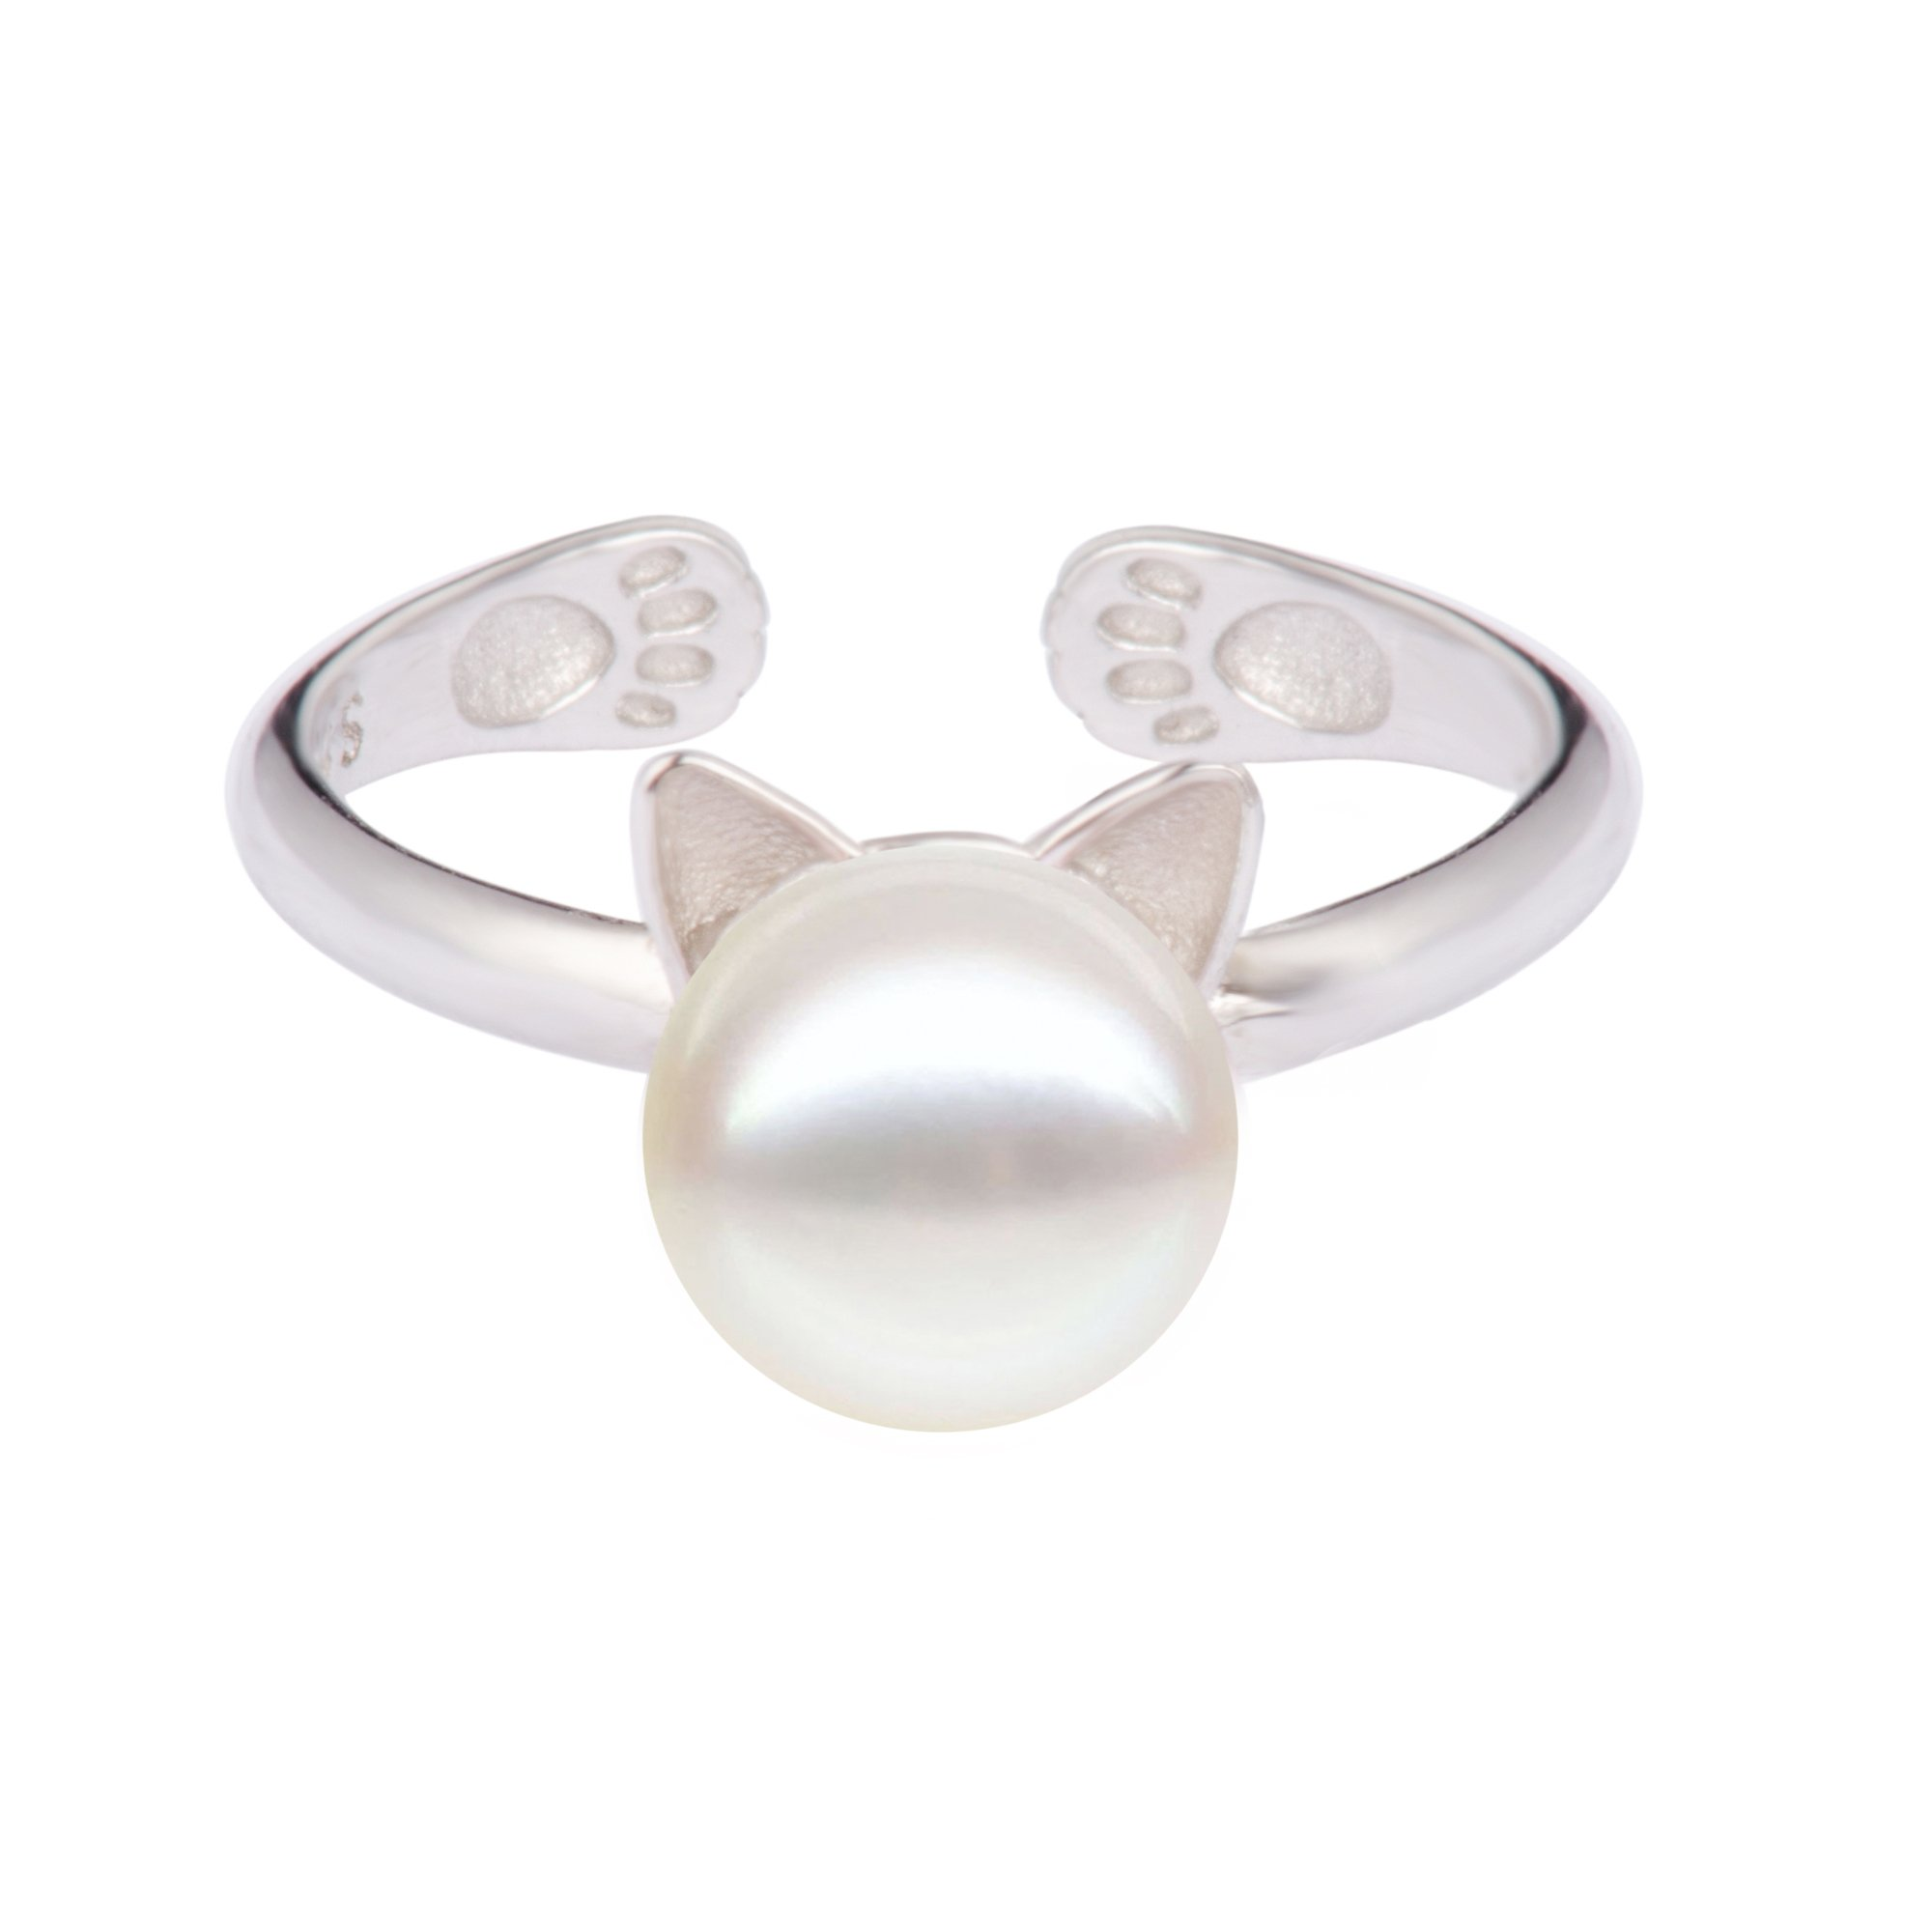 S.Leaf Cat Pearl Ring Sterling Silver by S.Leaf